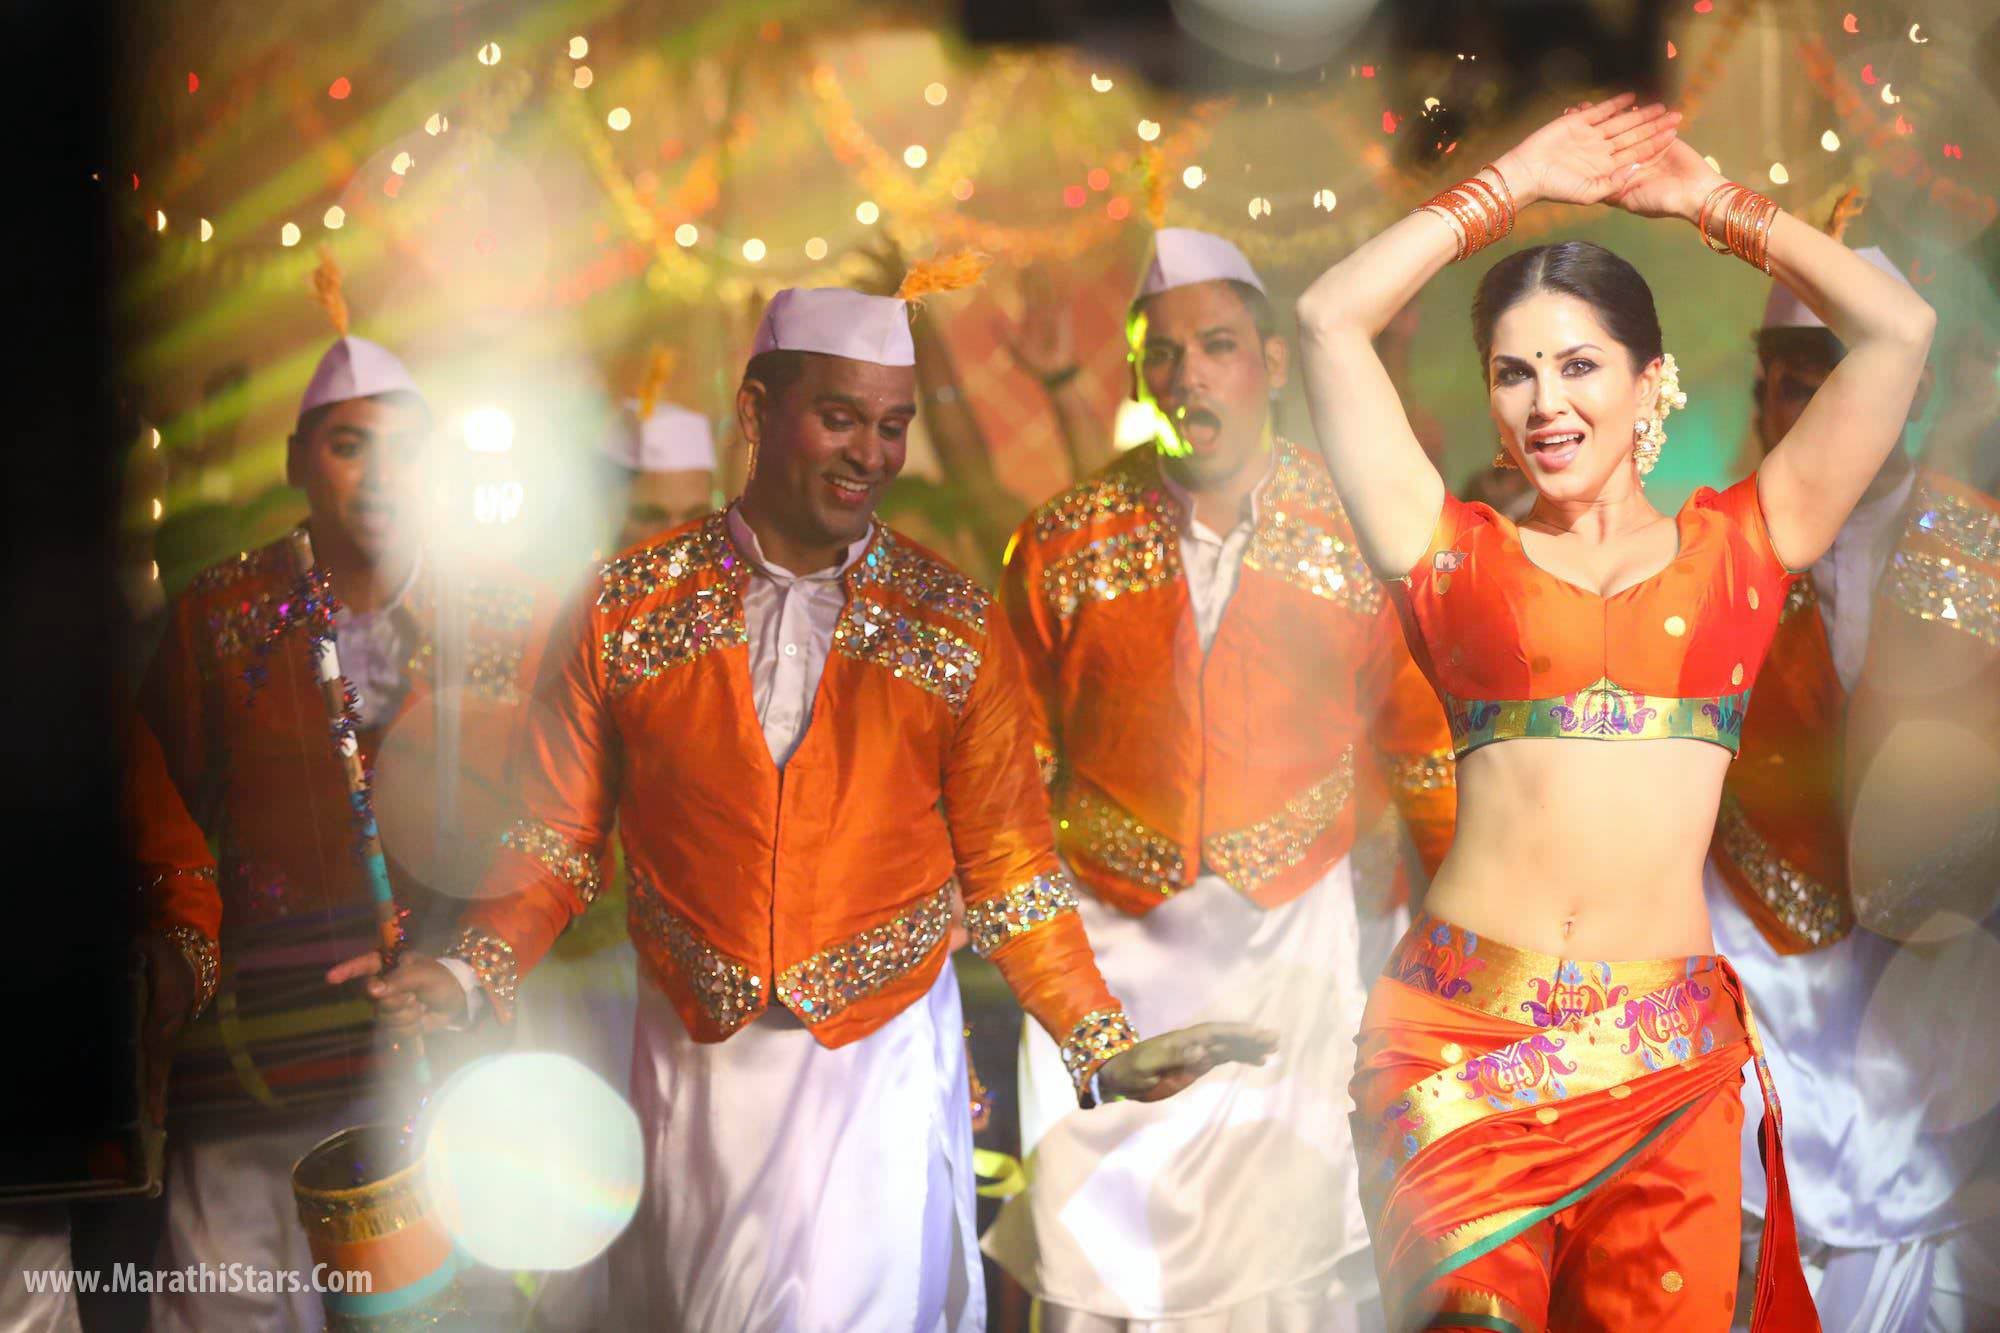 Ganesh Chaturthi Celebration In Sunny Leone's New Home In Mumbai